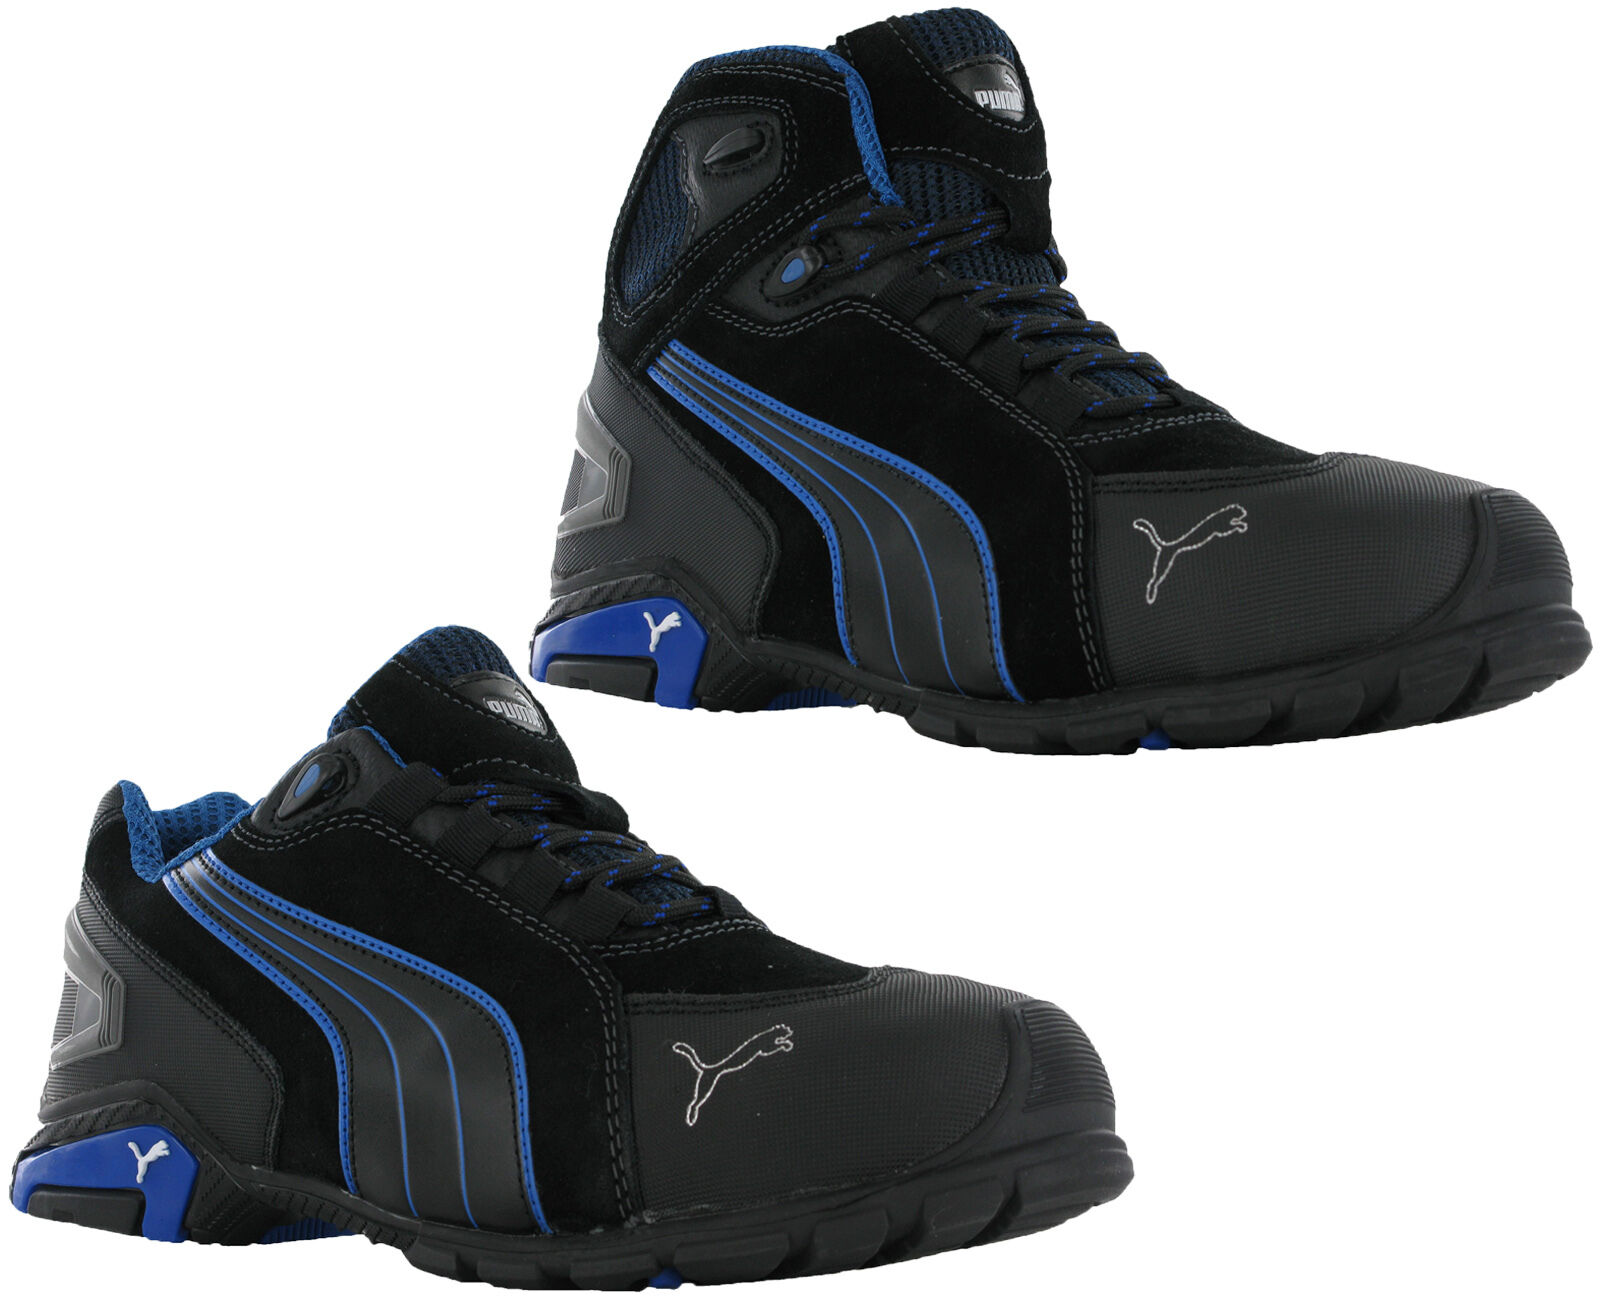 58ae01a6abe Puma Rio Low Mid Mens S3 SRC Safety Midsole Toe Cap Trainers Shoes Boots  UK6-12